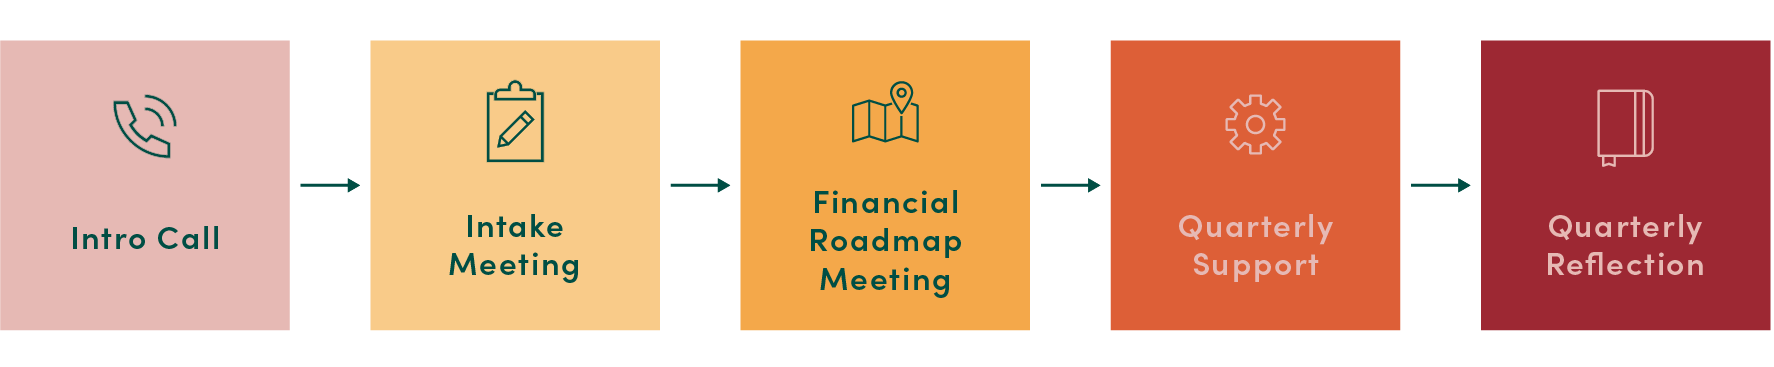 Intro Call → intake meeting →  financial roadmap meeting → quarterly support → quarterly reflection